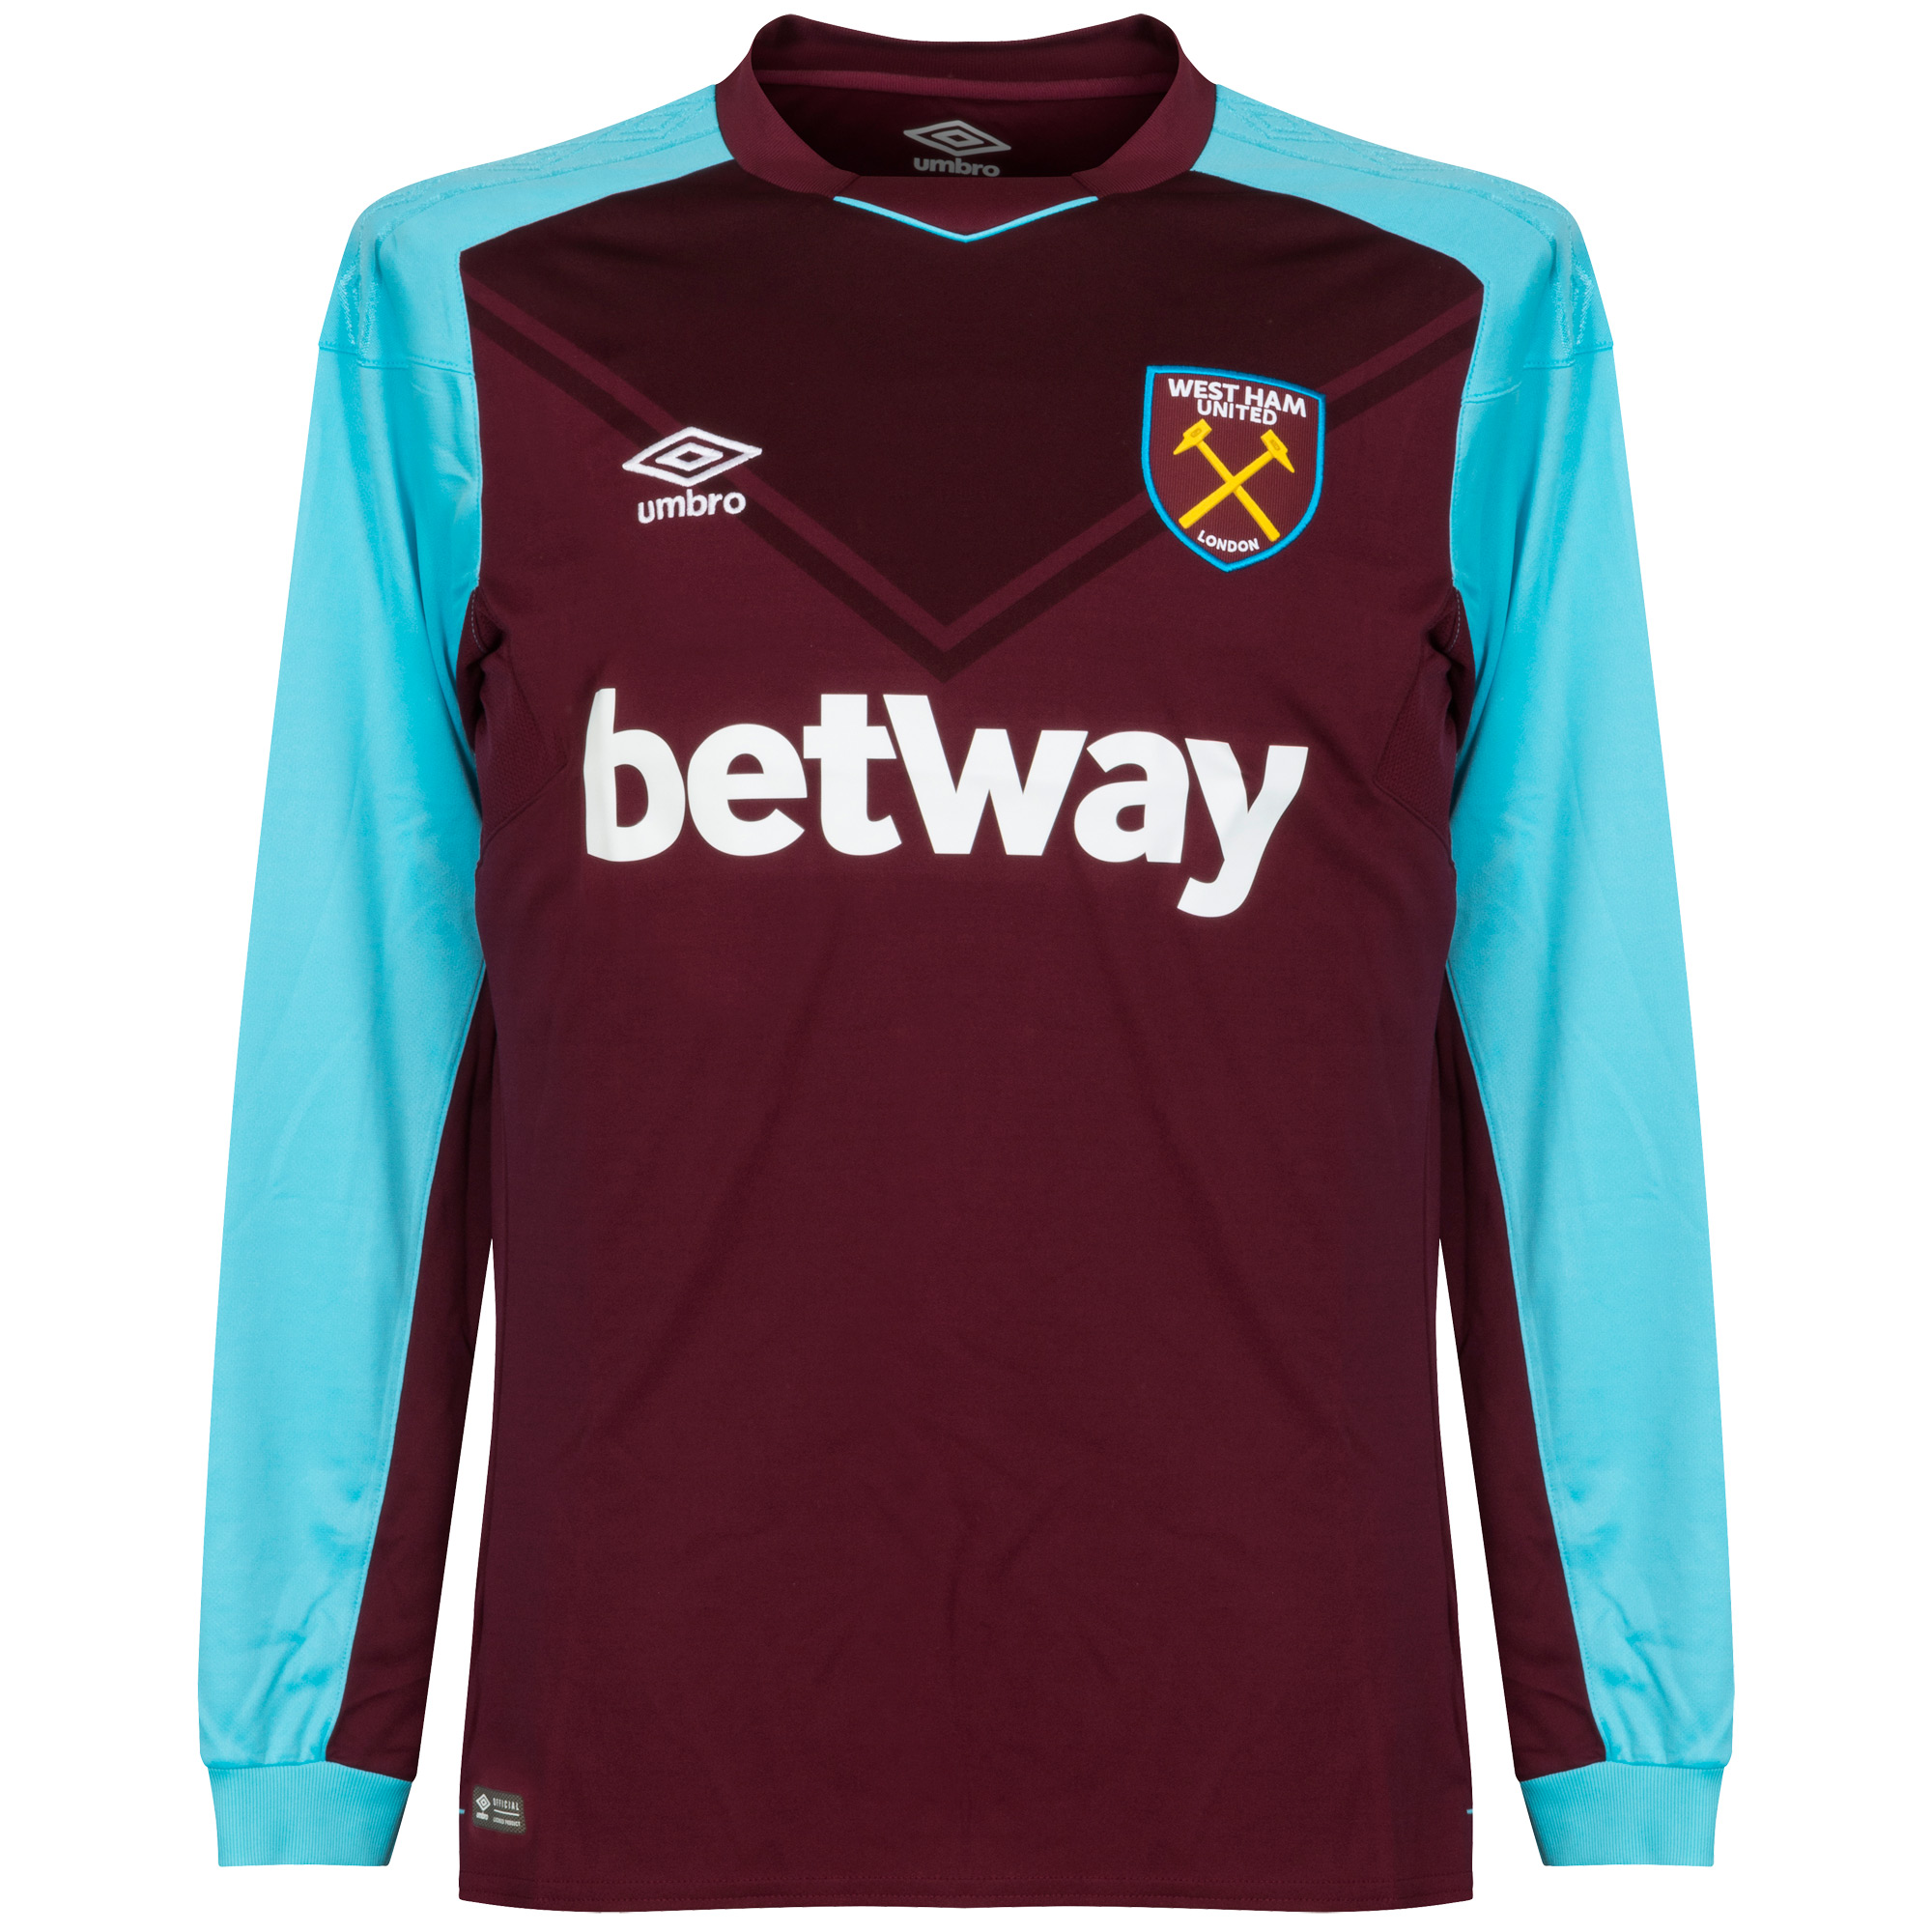 timeless design 21236 57aa7 West Ham United Home long sleeve Shirt 2017 2018 - M - New ...